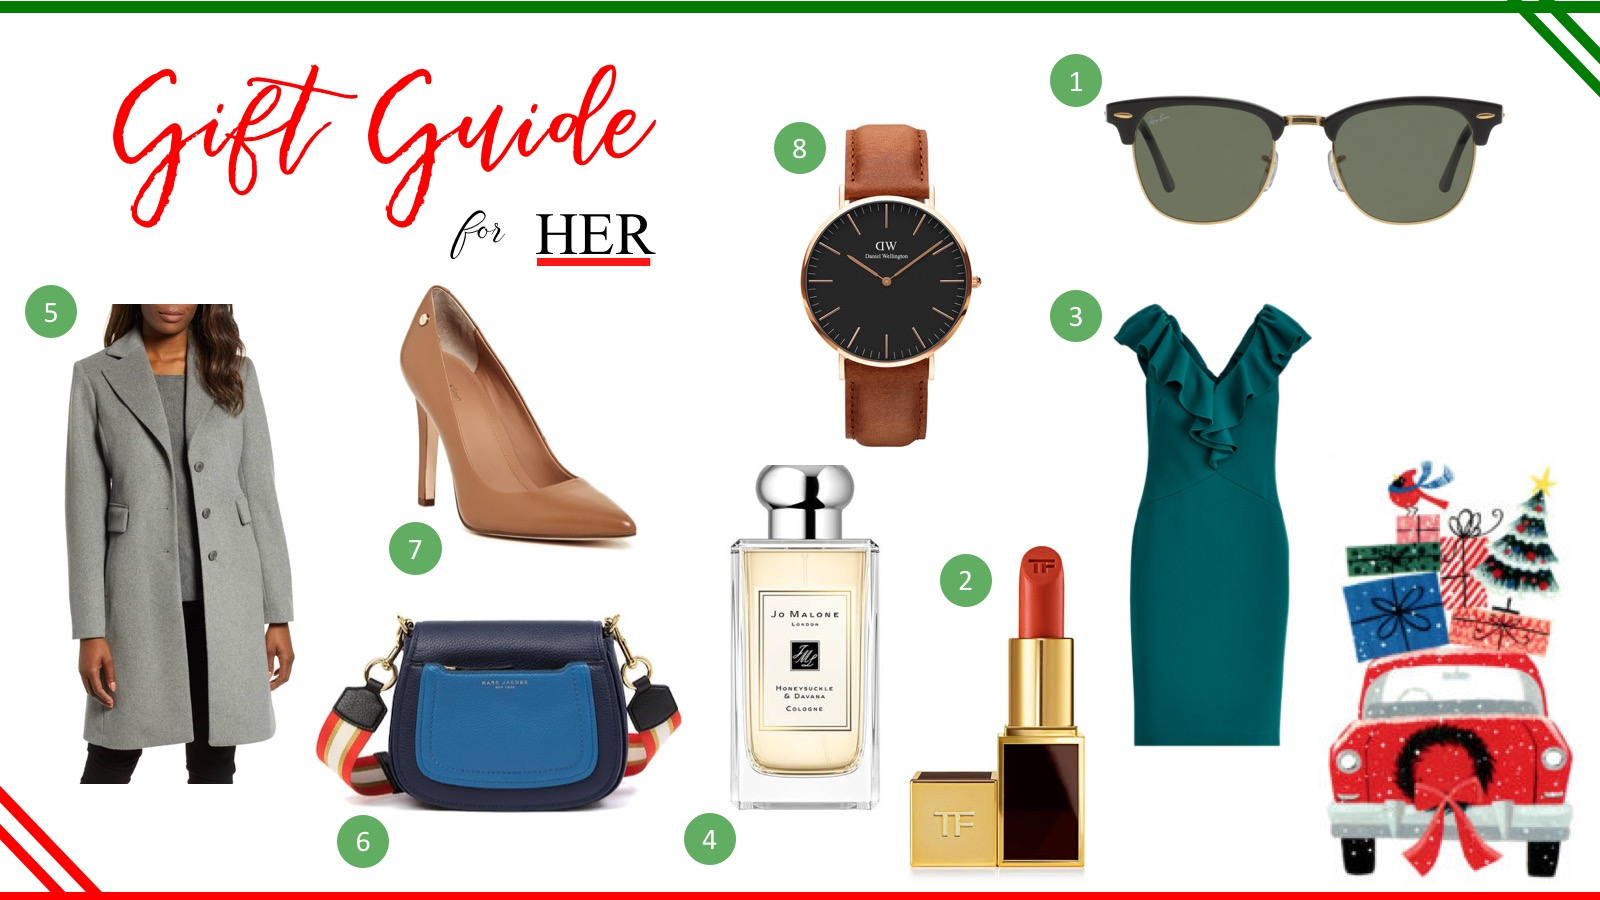 Holiday Gift Guide for HER and HIM